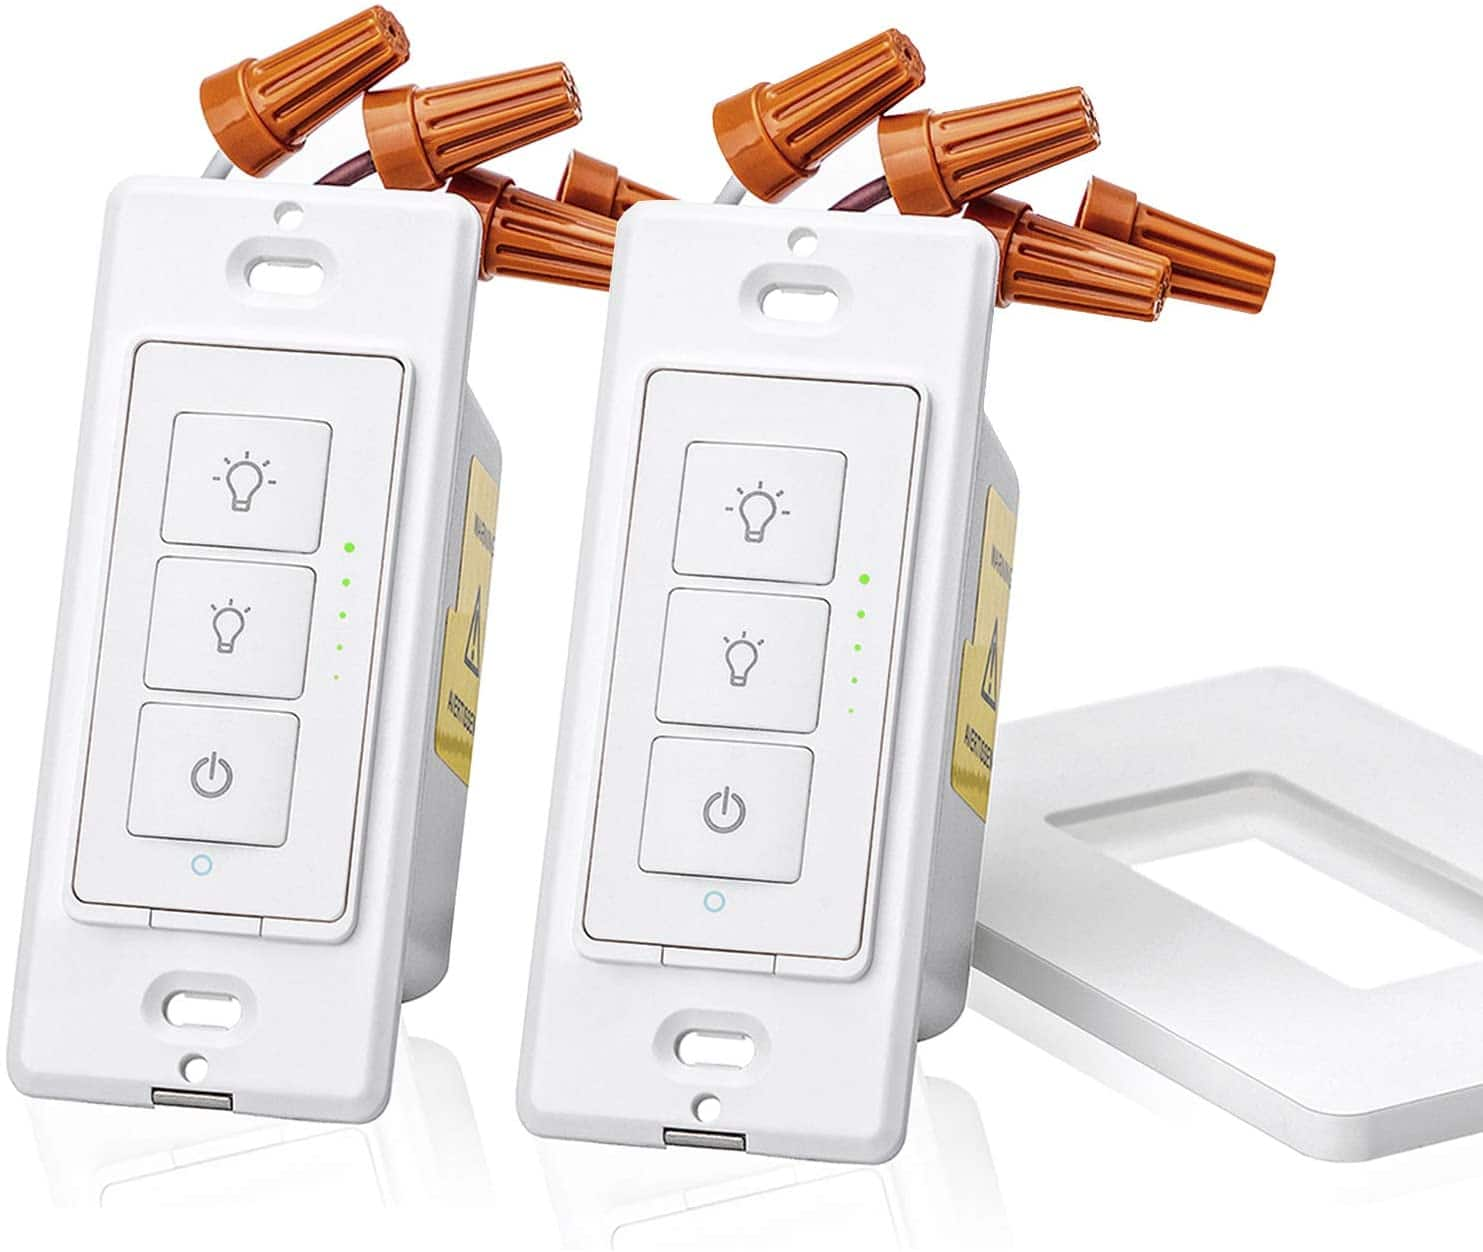 meross Smart Dimmer Switch for Dimmable LED Light, Halogen and Incandescent Bulb Works with Alexa, Google Assistant and IFTTT (2 Pack) - $27.99 FS w/ Prime